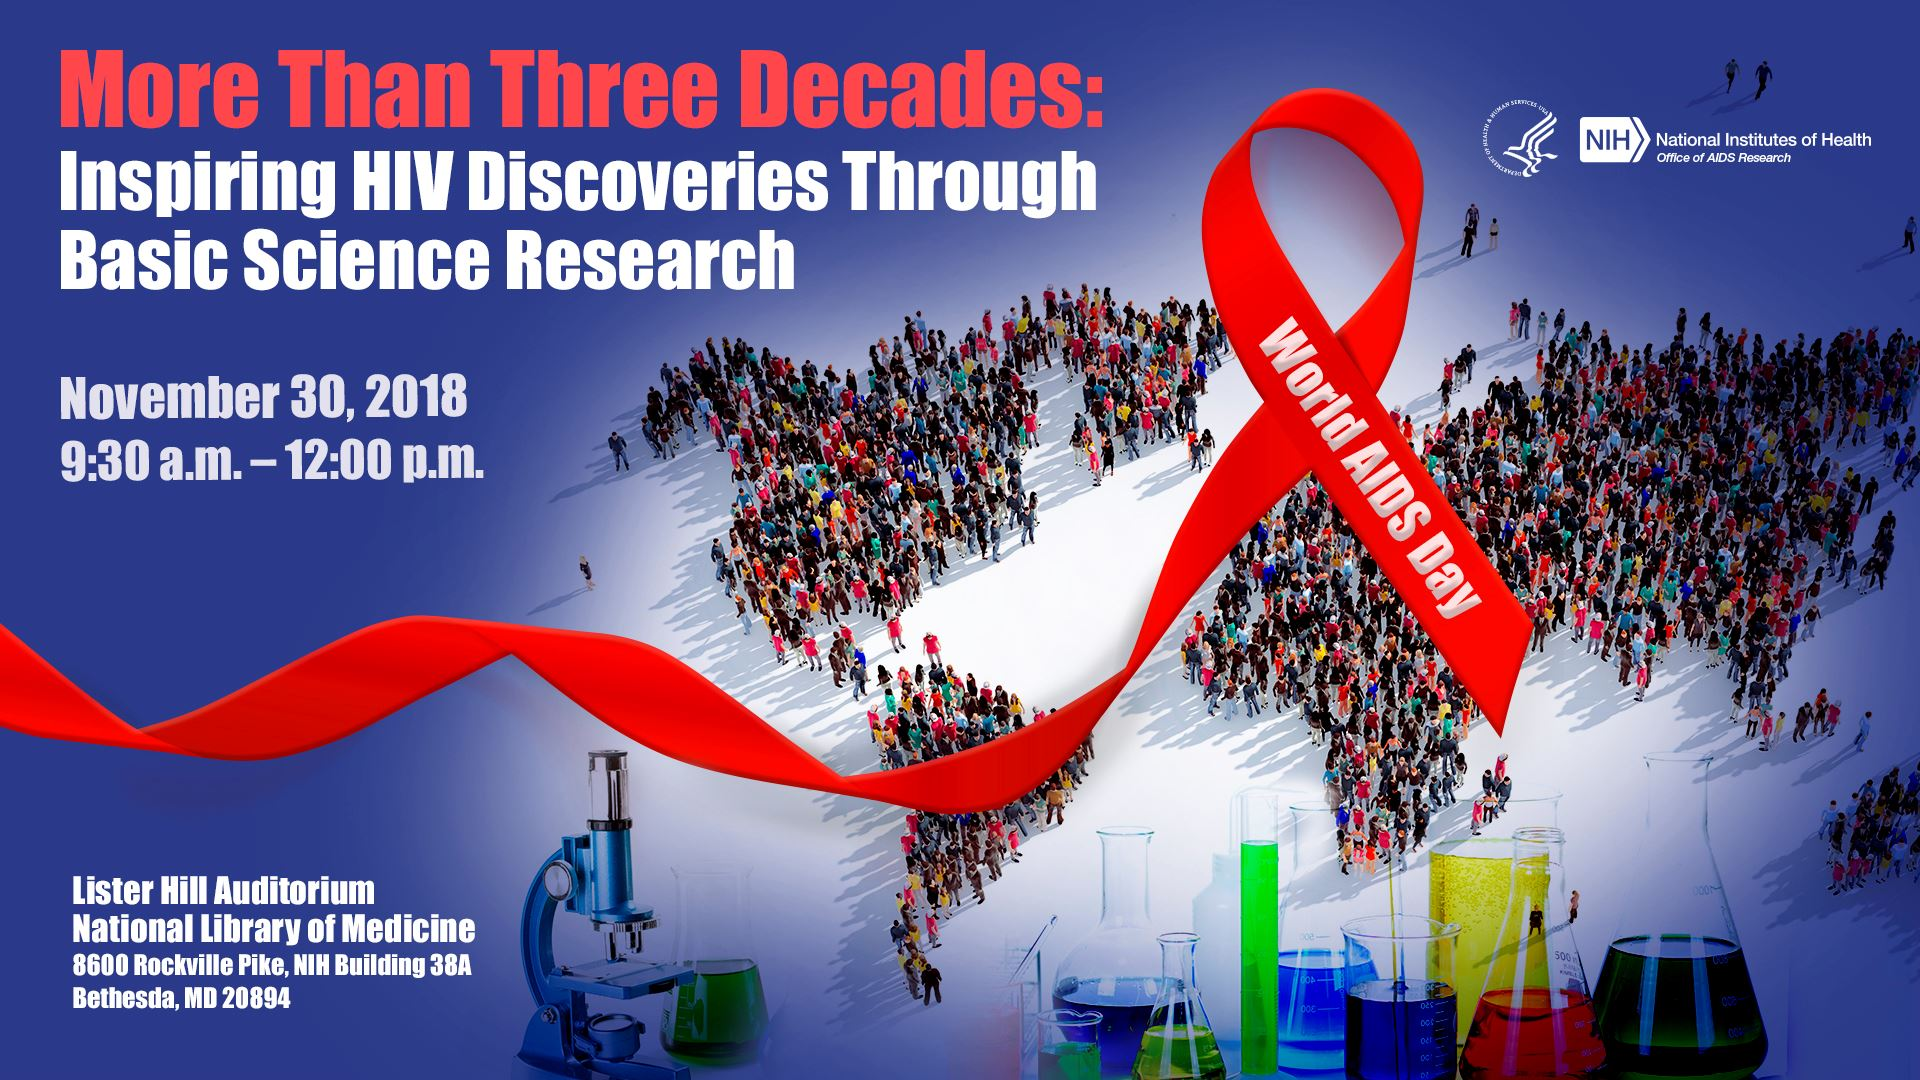 World AIDS Day 2018 National Institutes of Health (NIH) Flyer